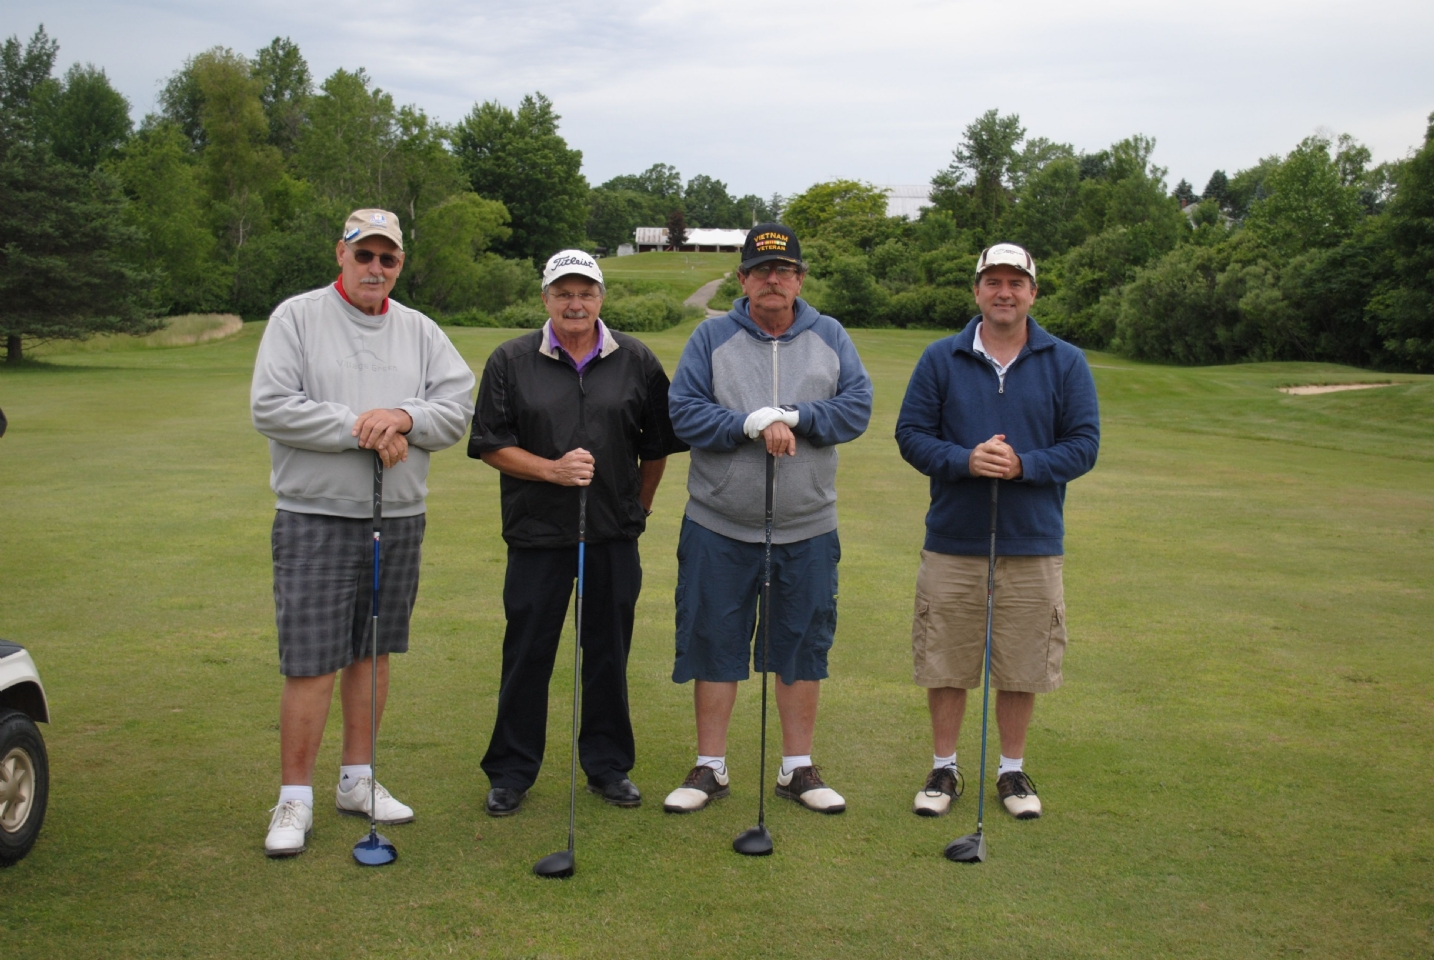 Village Green Golf Course, Newaygo, MI